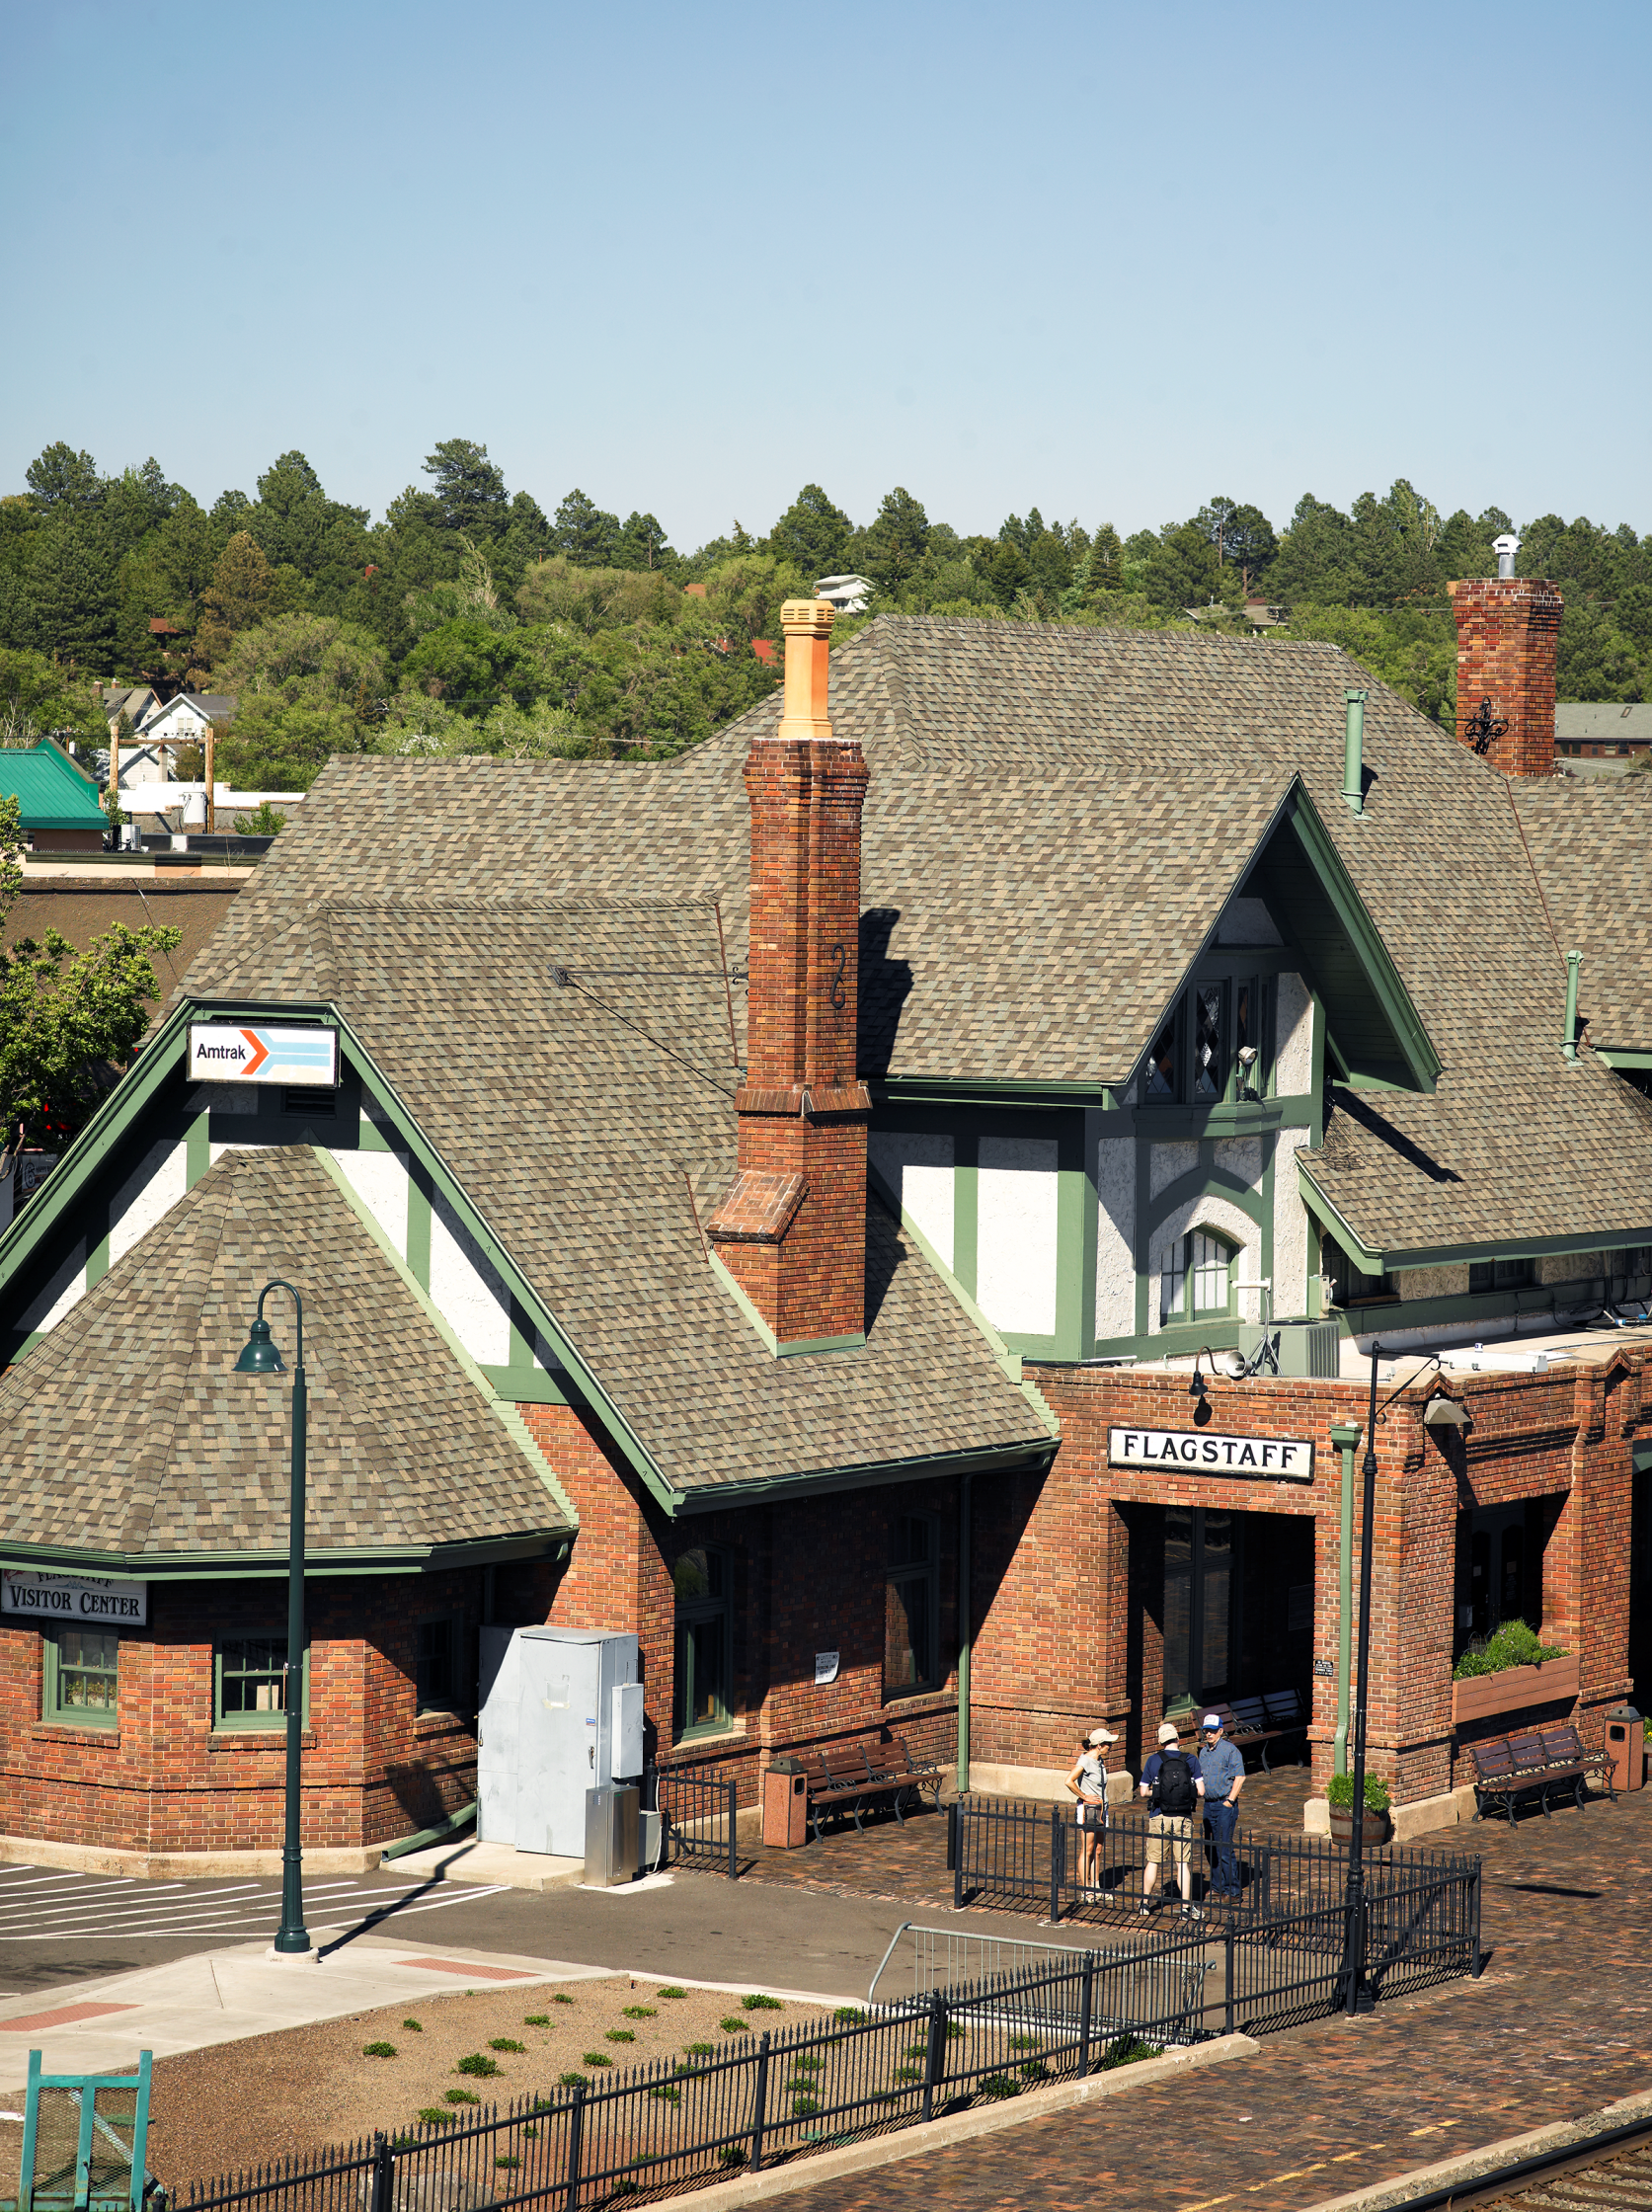 Certainteed Landmark Premium Designer Shingles In Weathered Wood On The Flagstaff Visitor Center And Amtrak Station Roofing Residential Roofing Certainteed